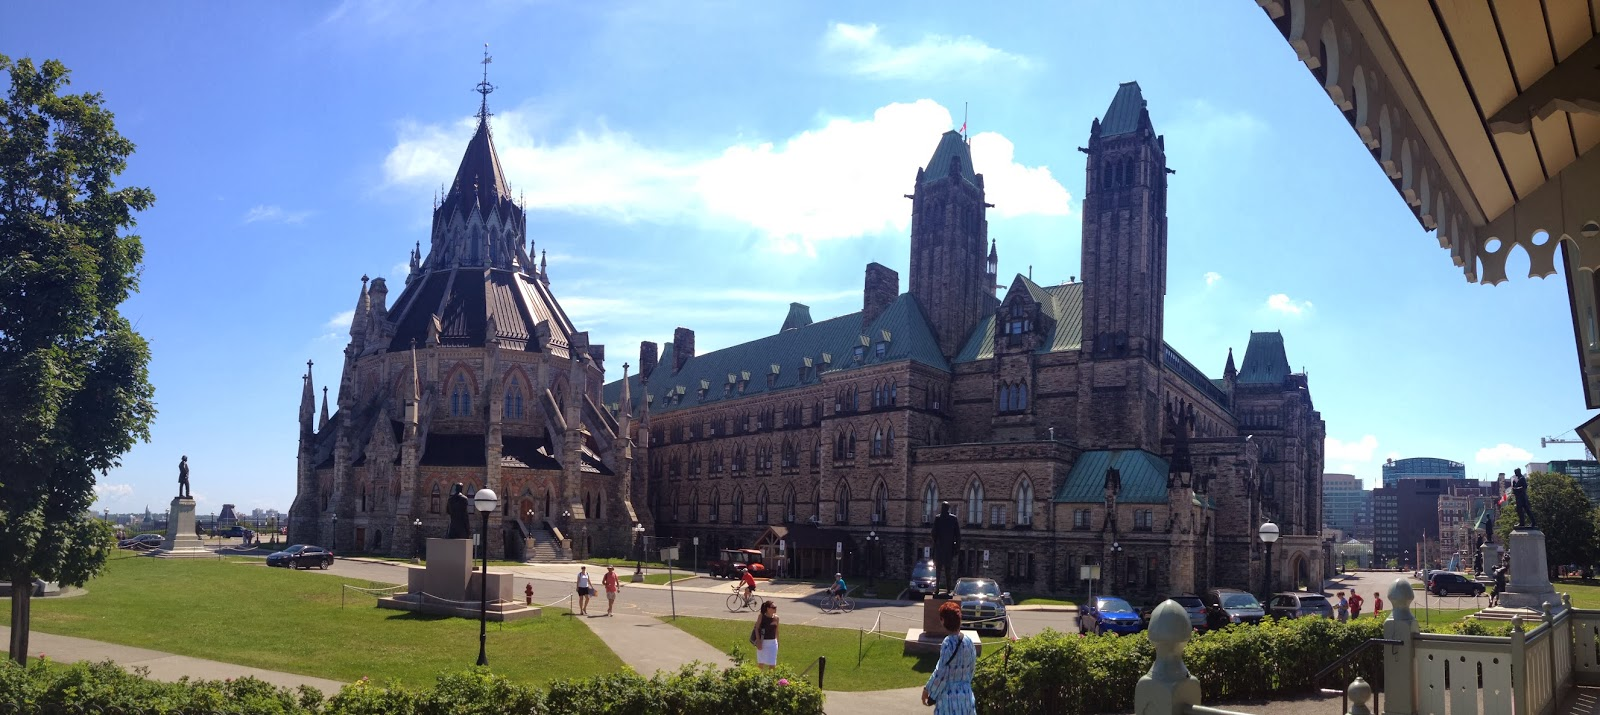 parlamento do Canadá em Ottawa | Blog Why Not?